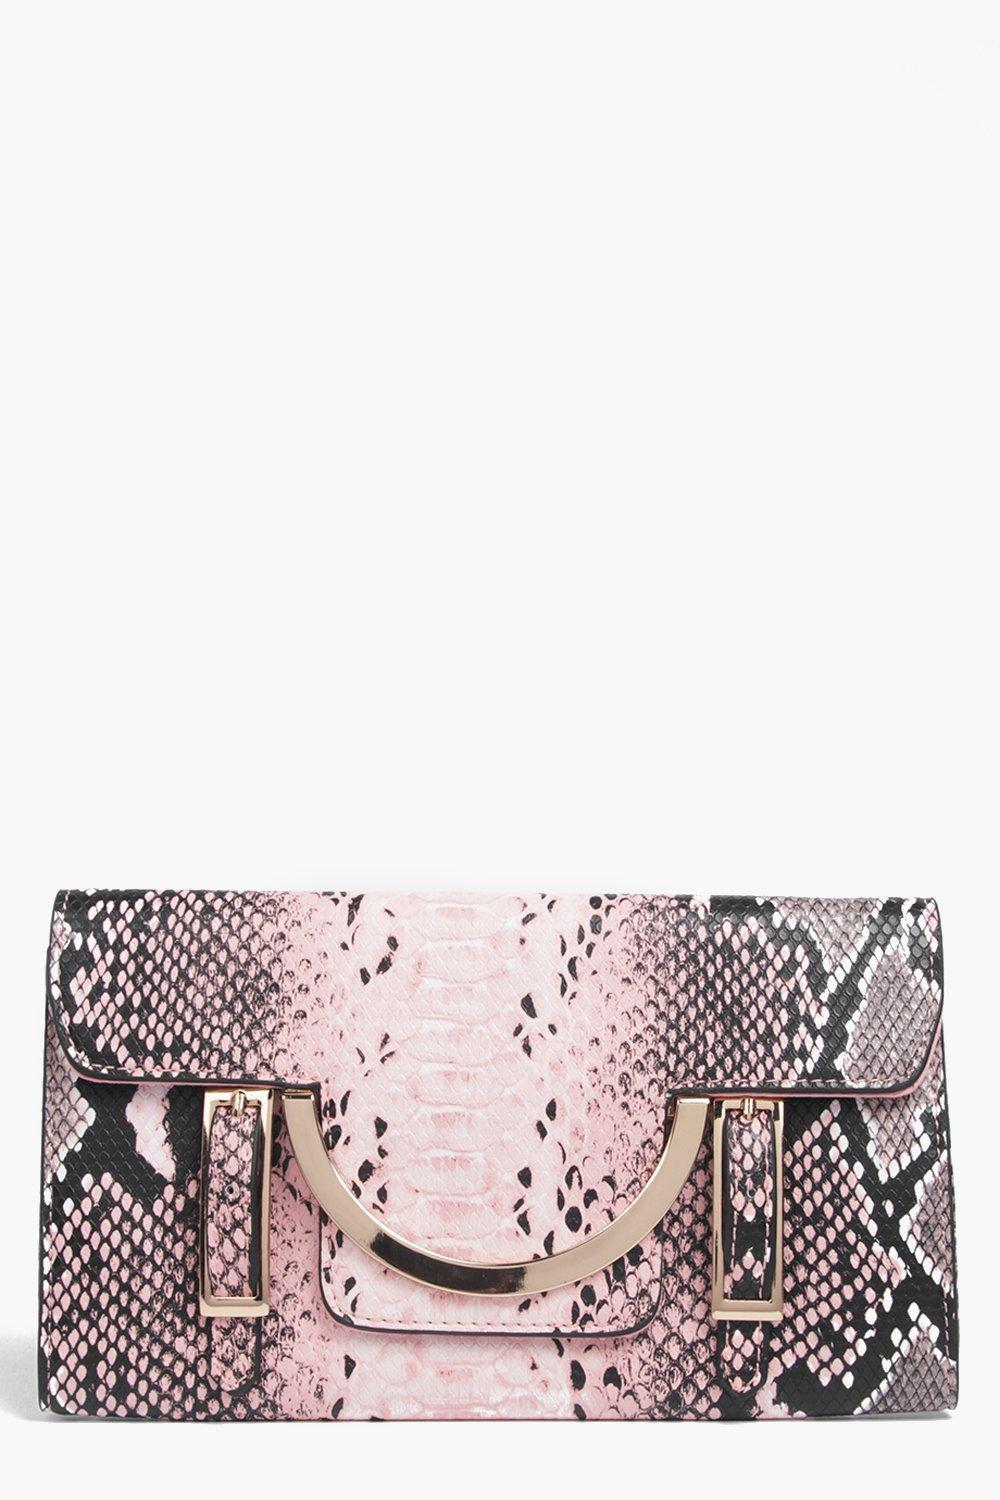 Faux Snake Metal Detail Clutch Bag Blush - predominant colour: blush; occasions: evening, occasion; type of pattern: standard; style: clutch; length: hand carry; size: standard; material: faux leather; pattern: animal print; finish: plain; multicoloured: multicoloured; season: s/s 2016; wardrobe: event